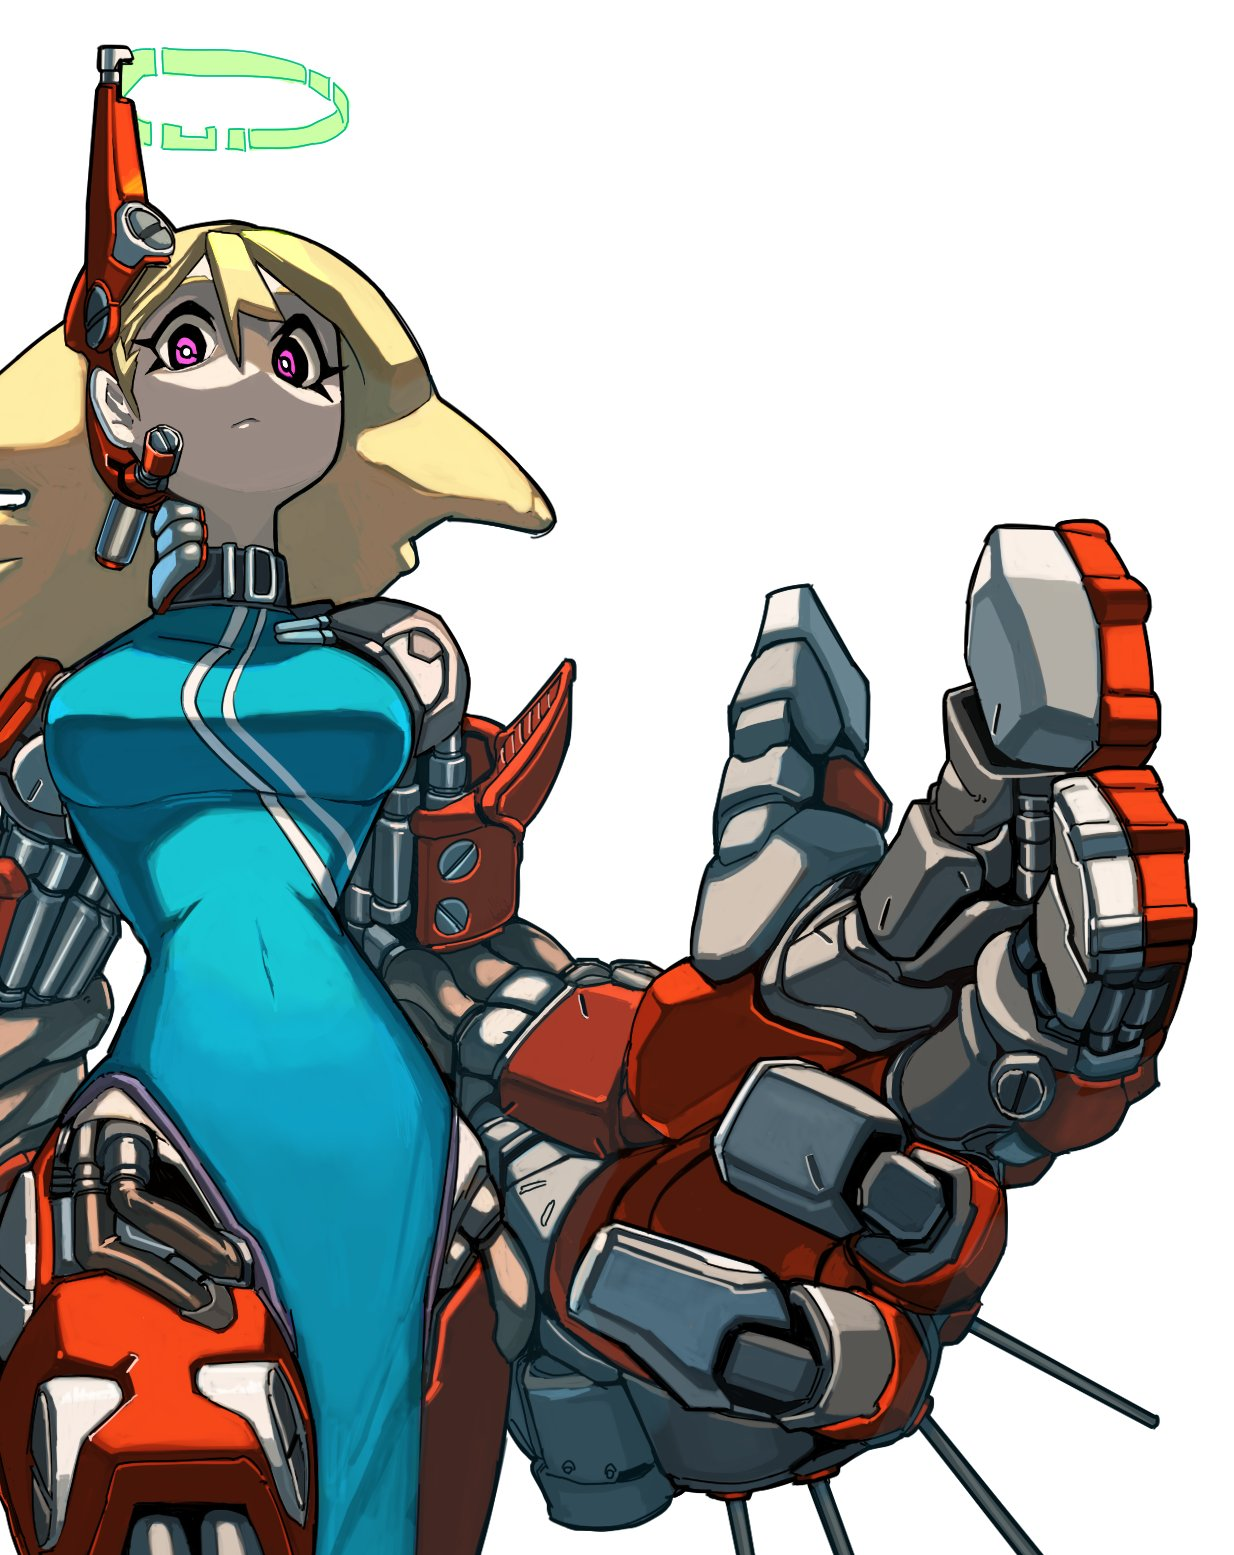 1girl blonde_hair breasts china_dress chinese_clothes cyborg dress hair_between_eyes halo highres koutetu_yarou large_breasts long_hair looking_at_viewer original oversized_forearms oversized_limbs robot_joints science_fiction solo violet_eyes white_background